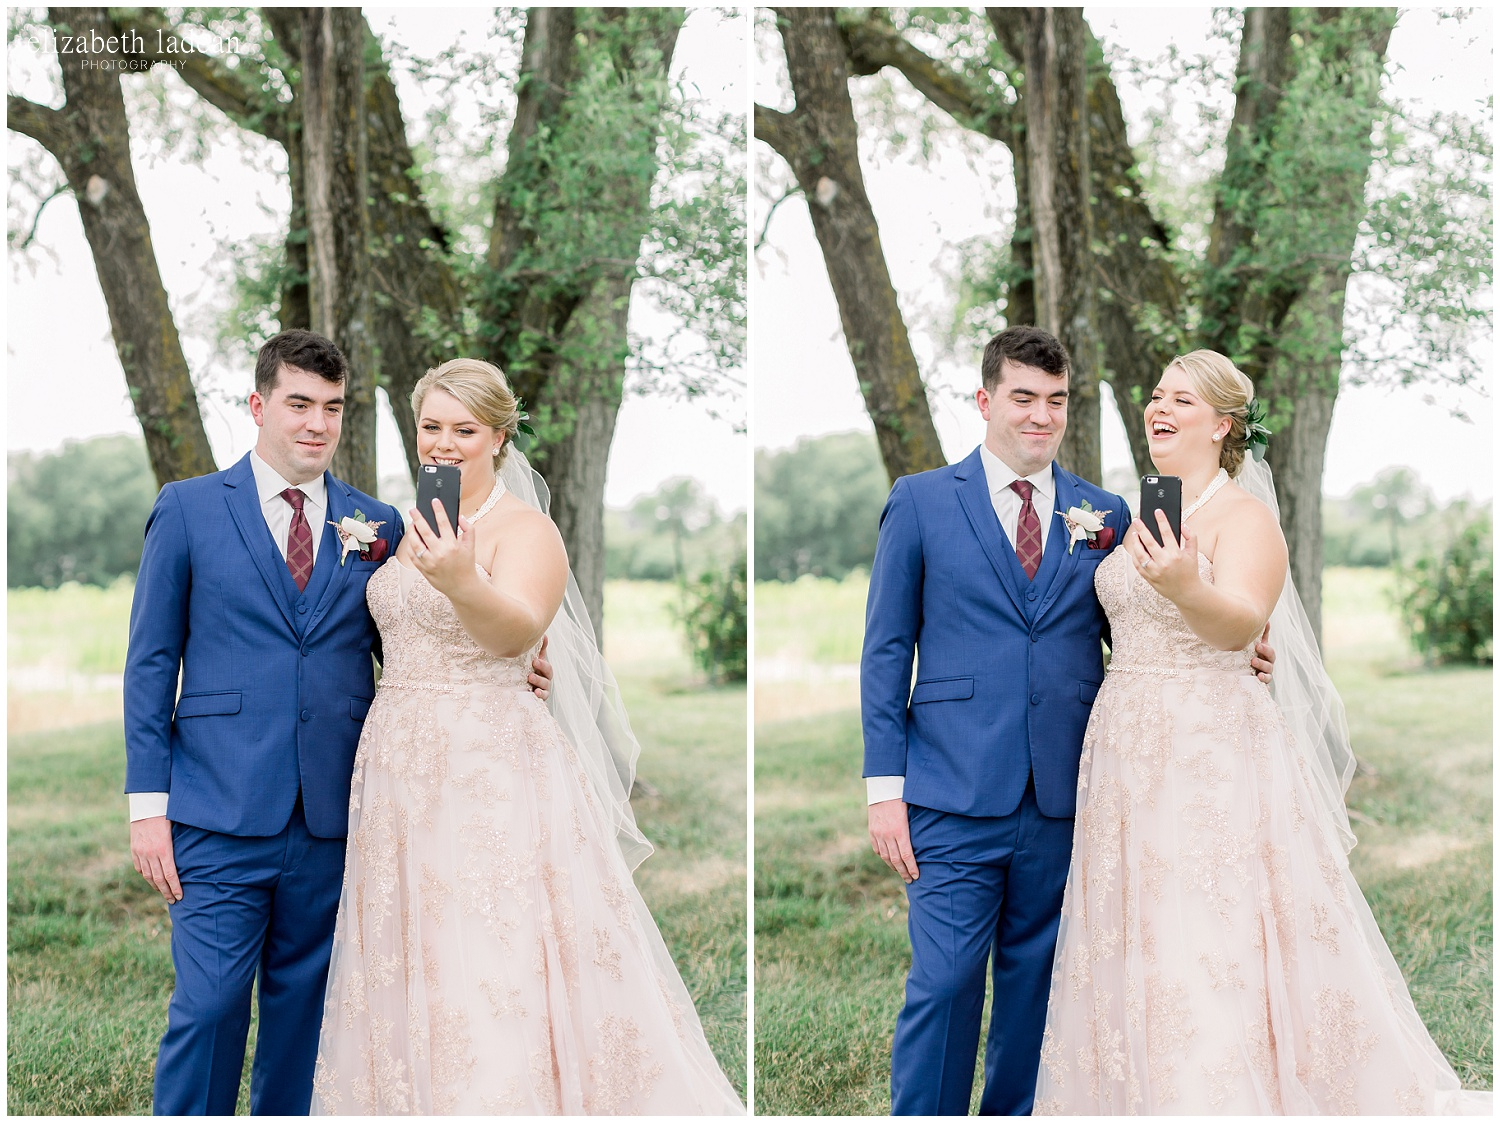 -behind-the-scenes-of-a-wedding-photographer-2018-elizabeth-ladean-photography-photo_3477.jpg